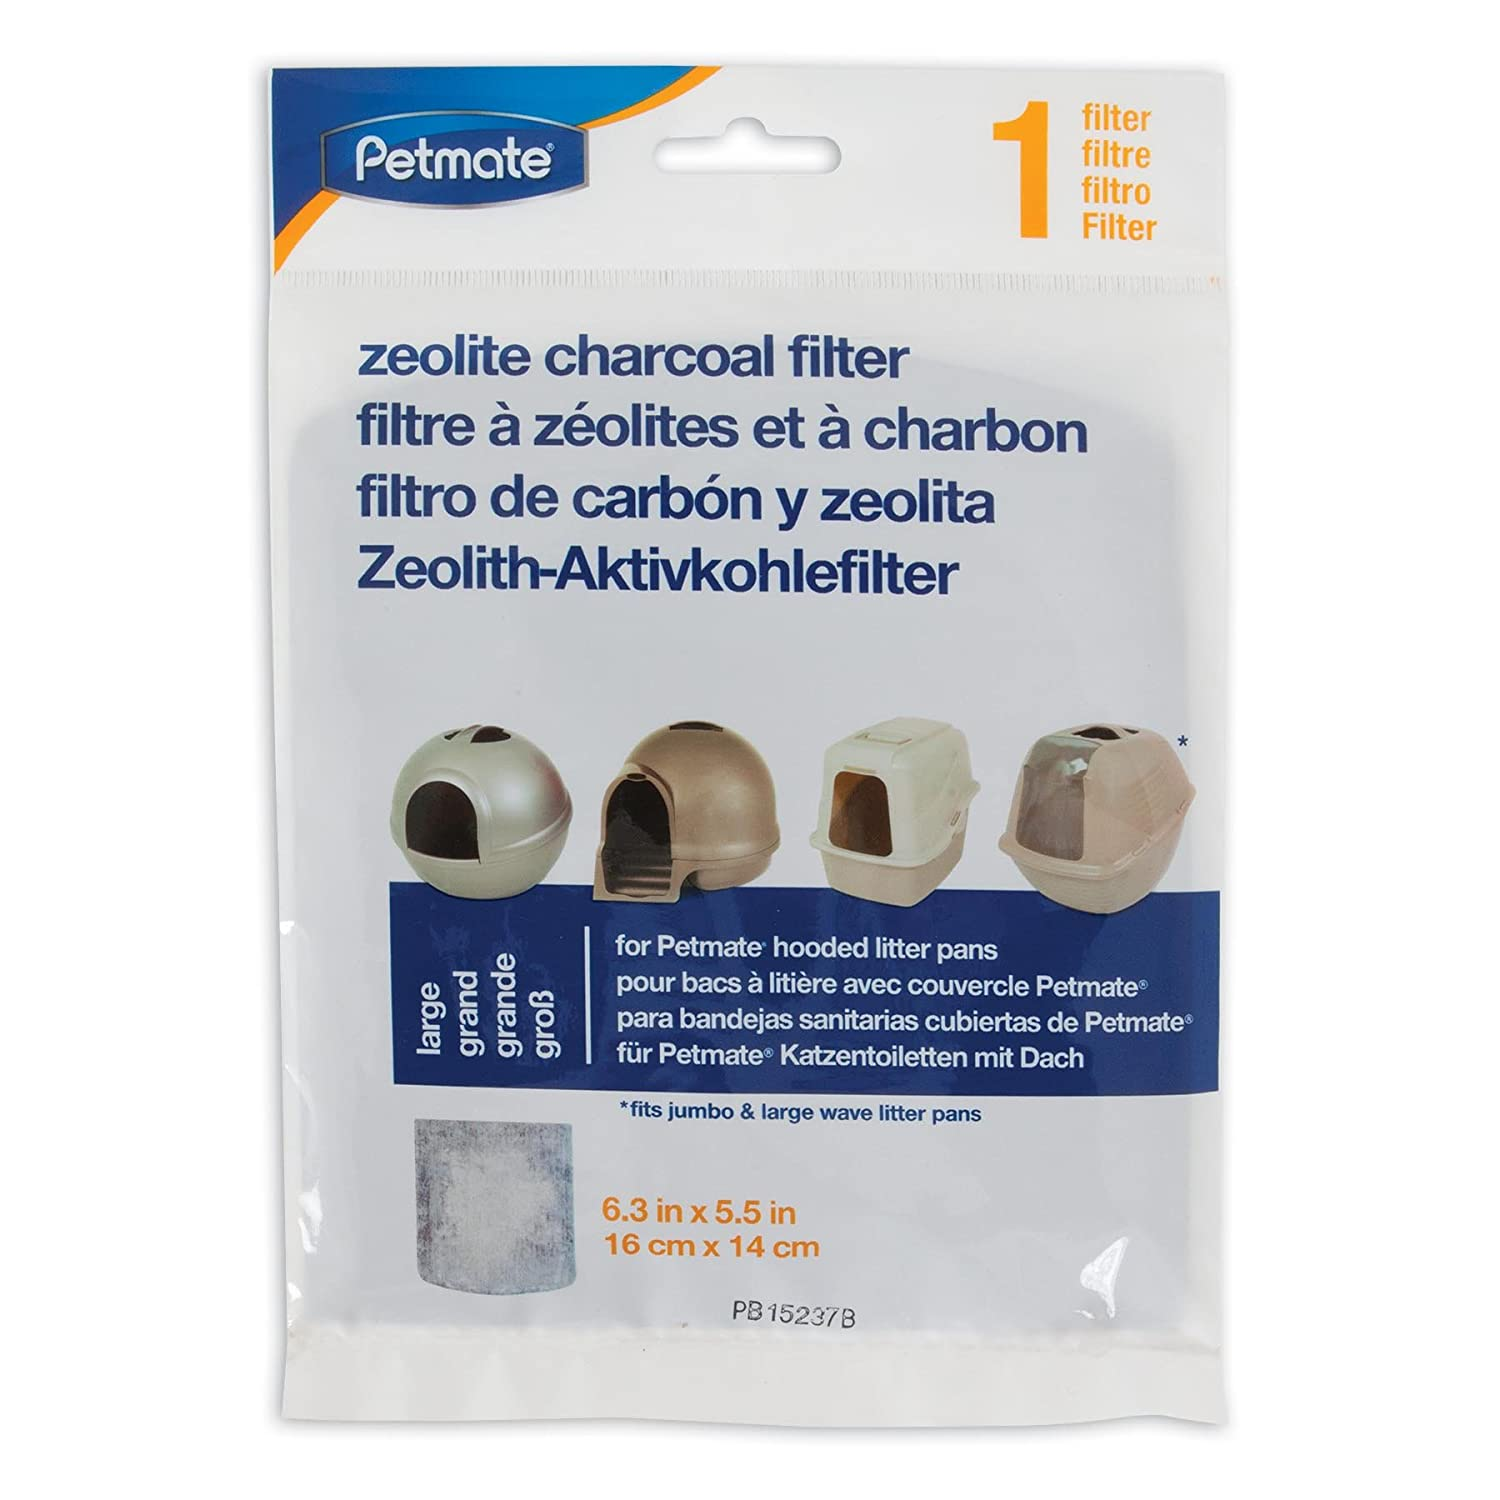 Amazon.com: Dosckocil (Petmate) CDS29202 Basic Cat Litter Box Zeolite Filter, Large: Pet Supplies